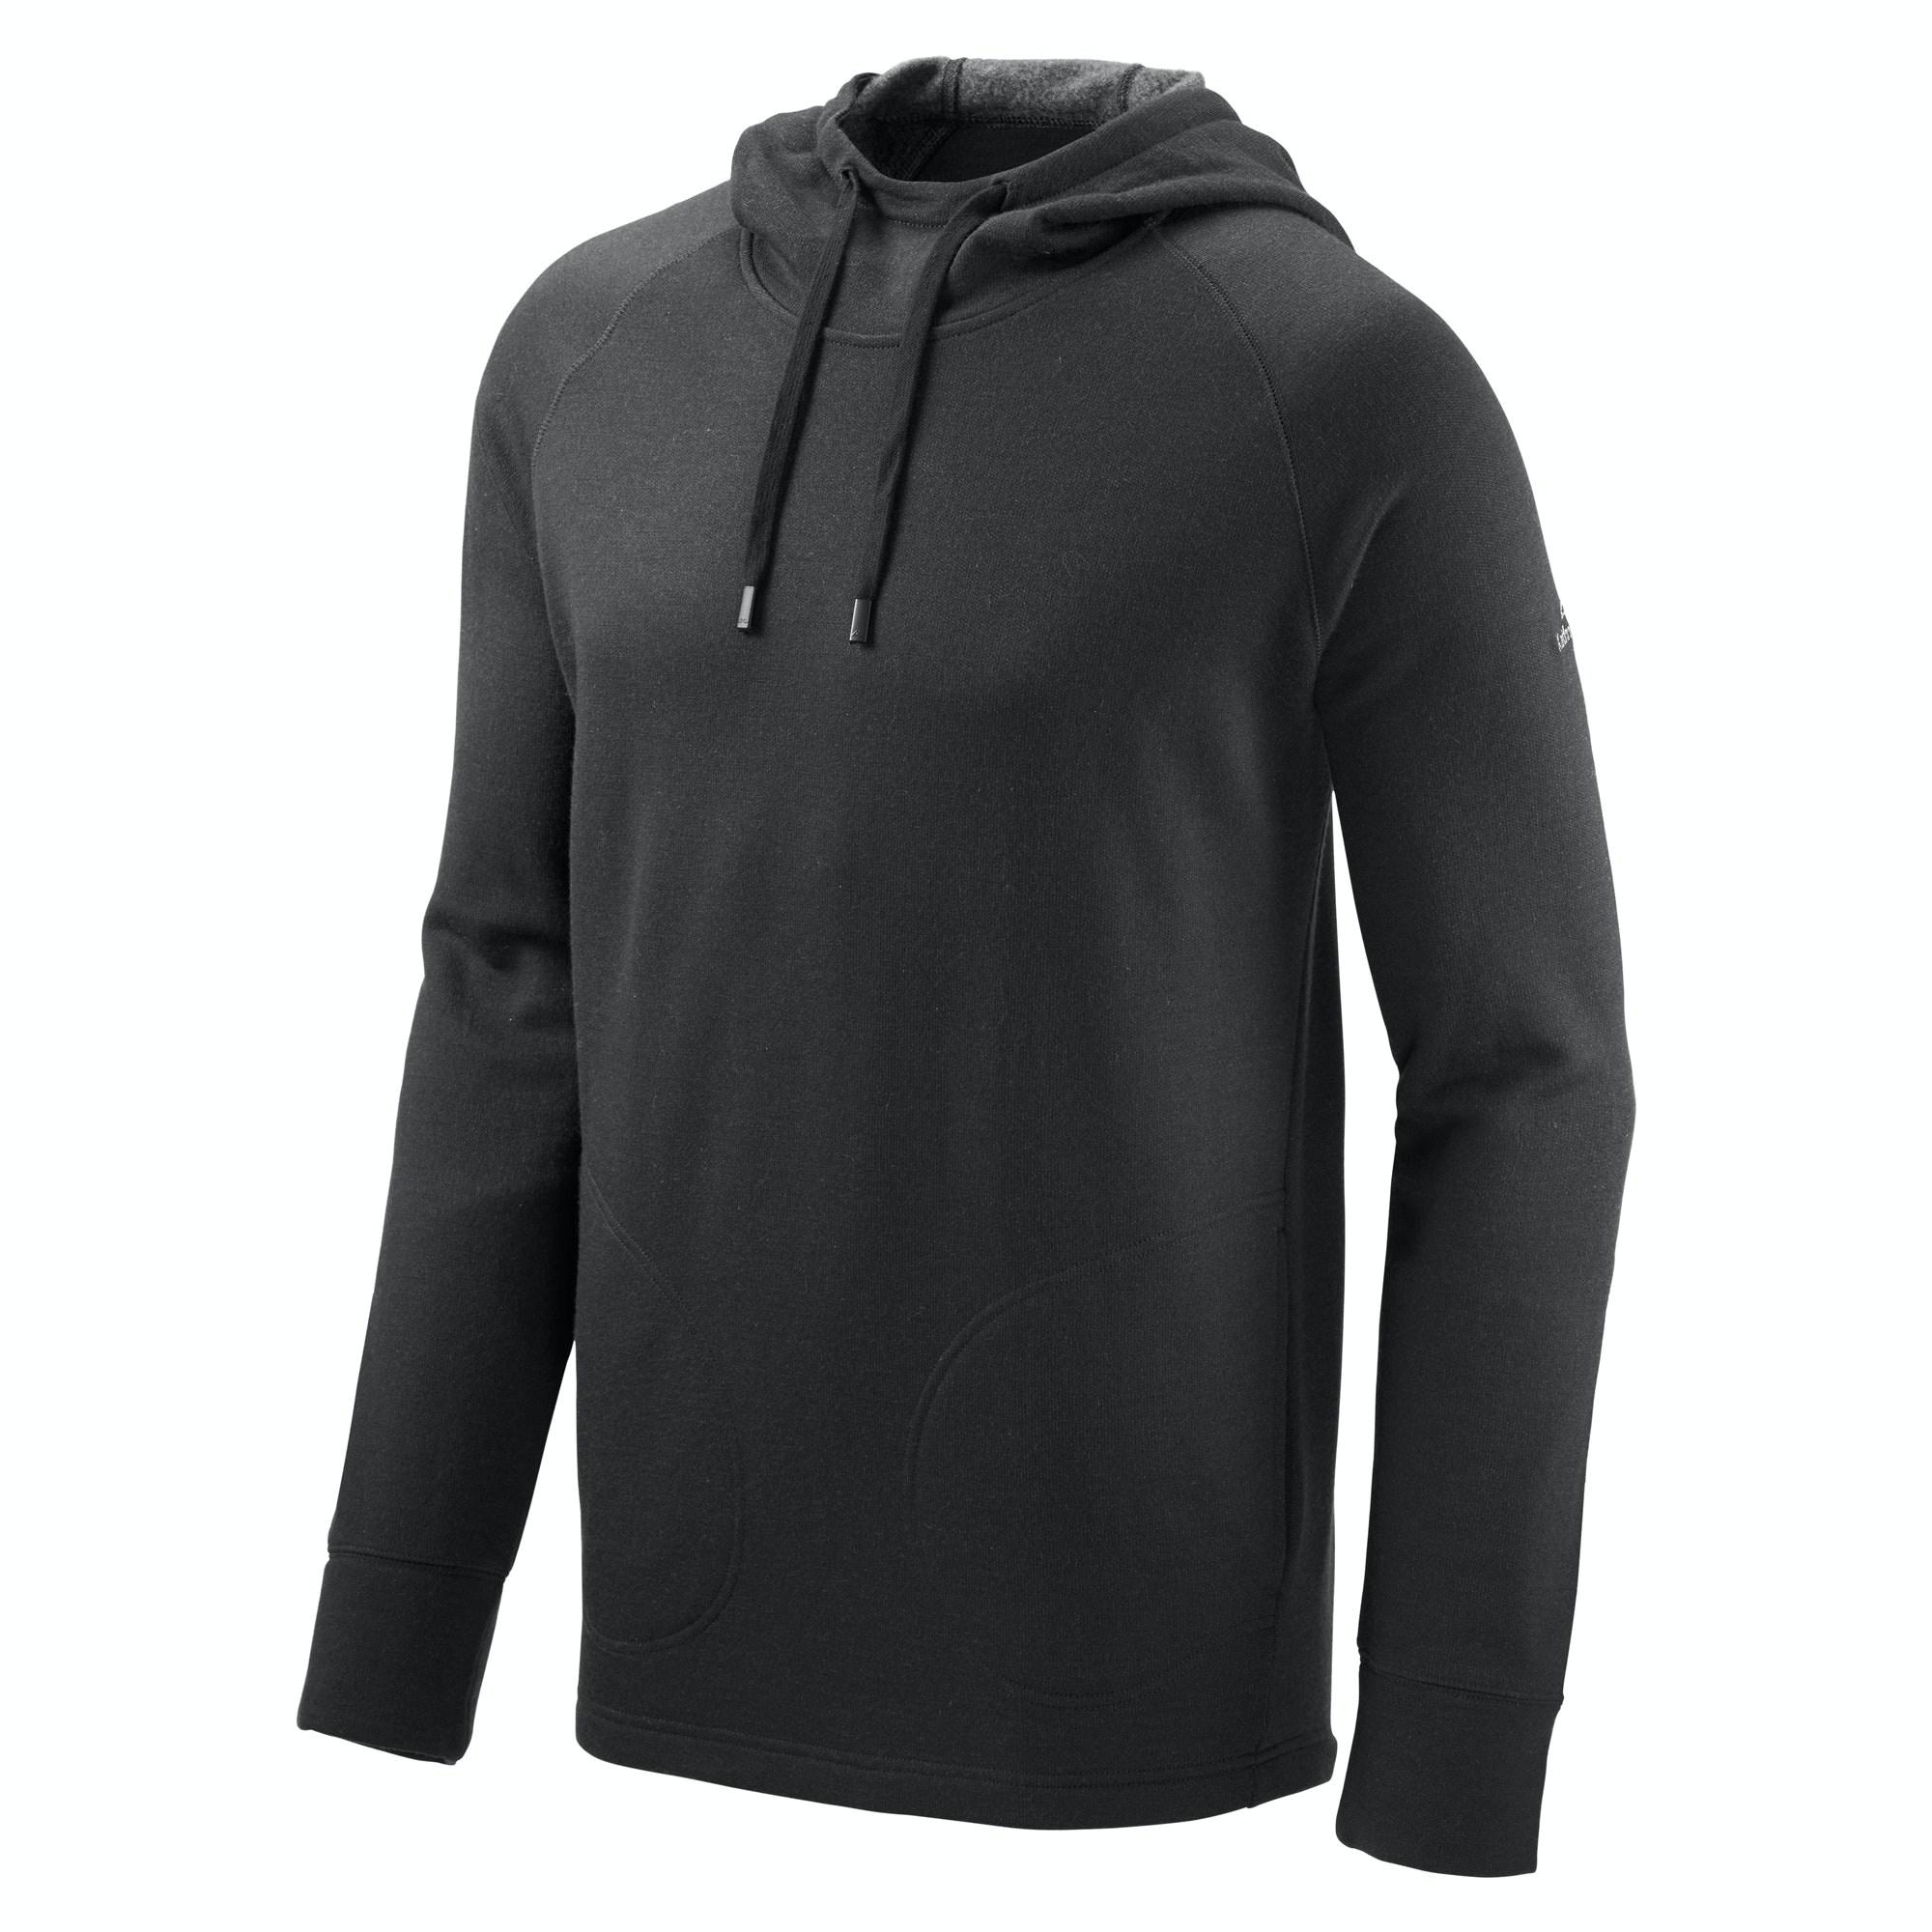 Comfort & Stealth: Camo Hoodies Make Perfect Gifts. Blend into your surroundings with warm camo hoodies from DICK'S Sporting Goods. Choose from pullover hoodies, half-zip hoodies and full-zip hoodies with advanced features to help you keep a low profile on the hunt.